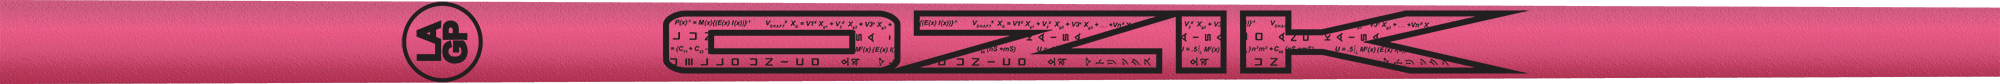 Ozik Red Tie: Neon Pink Black Textured - Wood 50 R